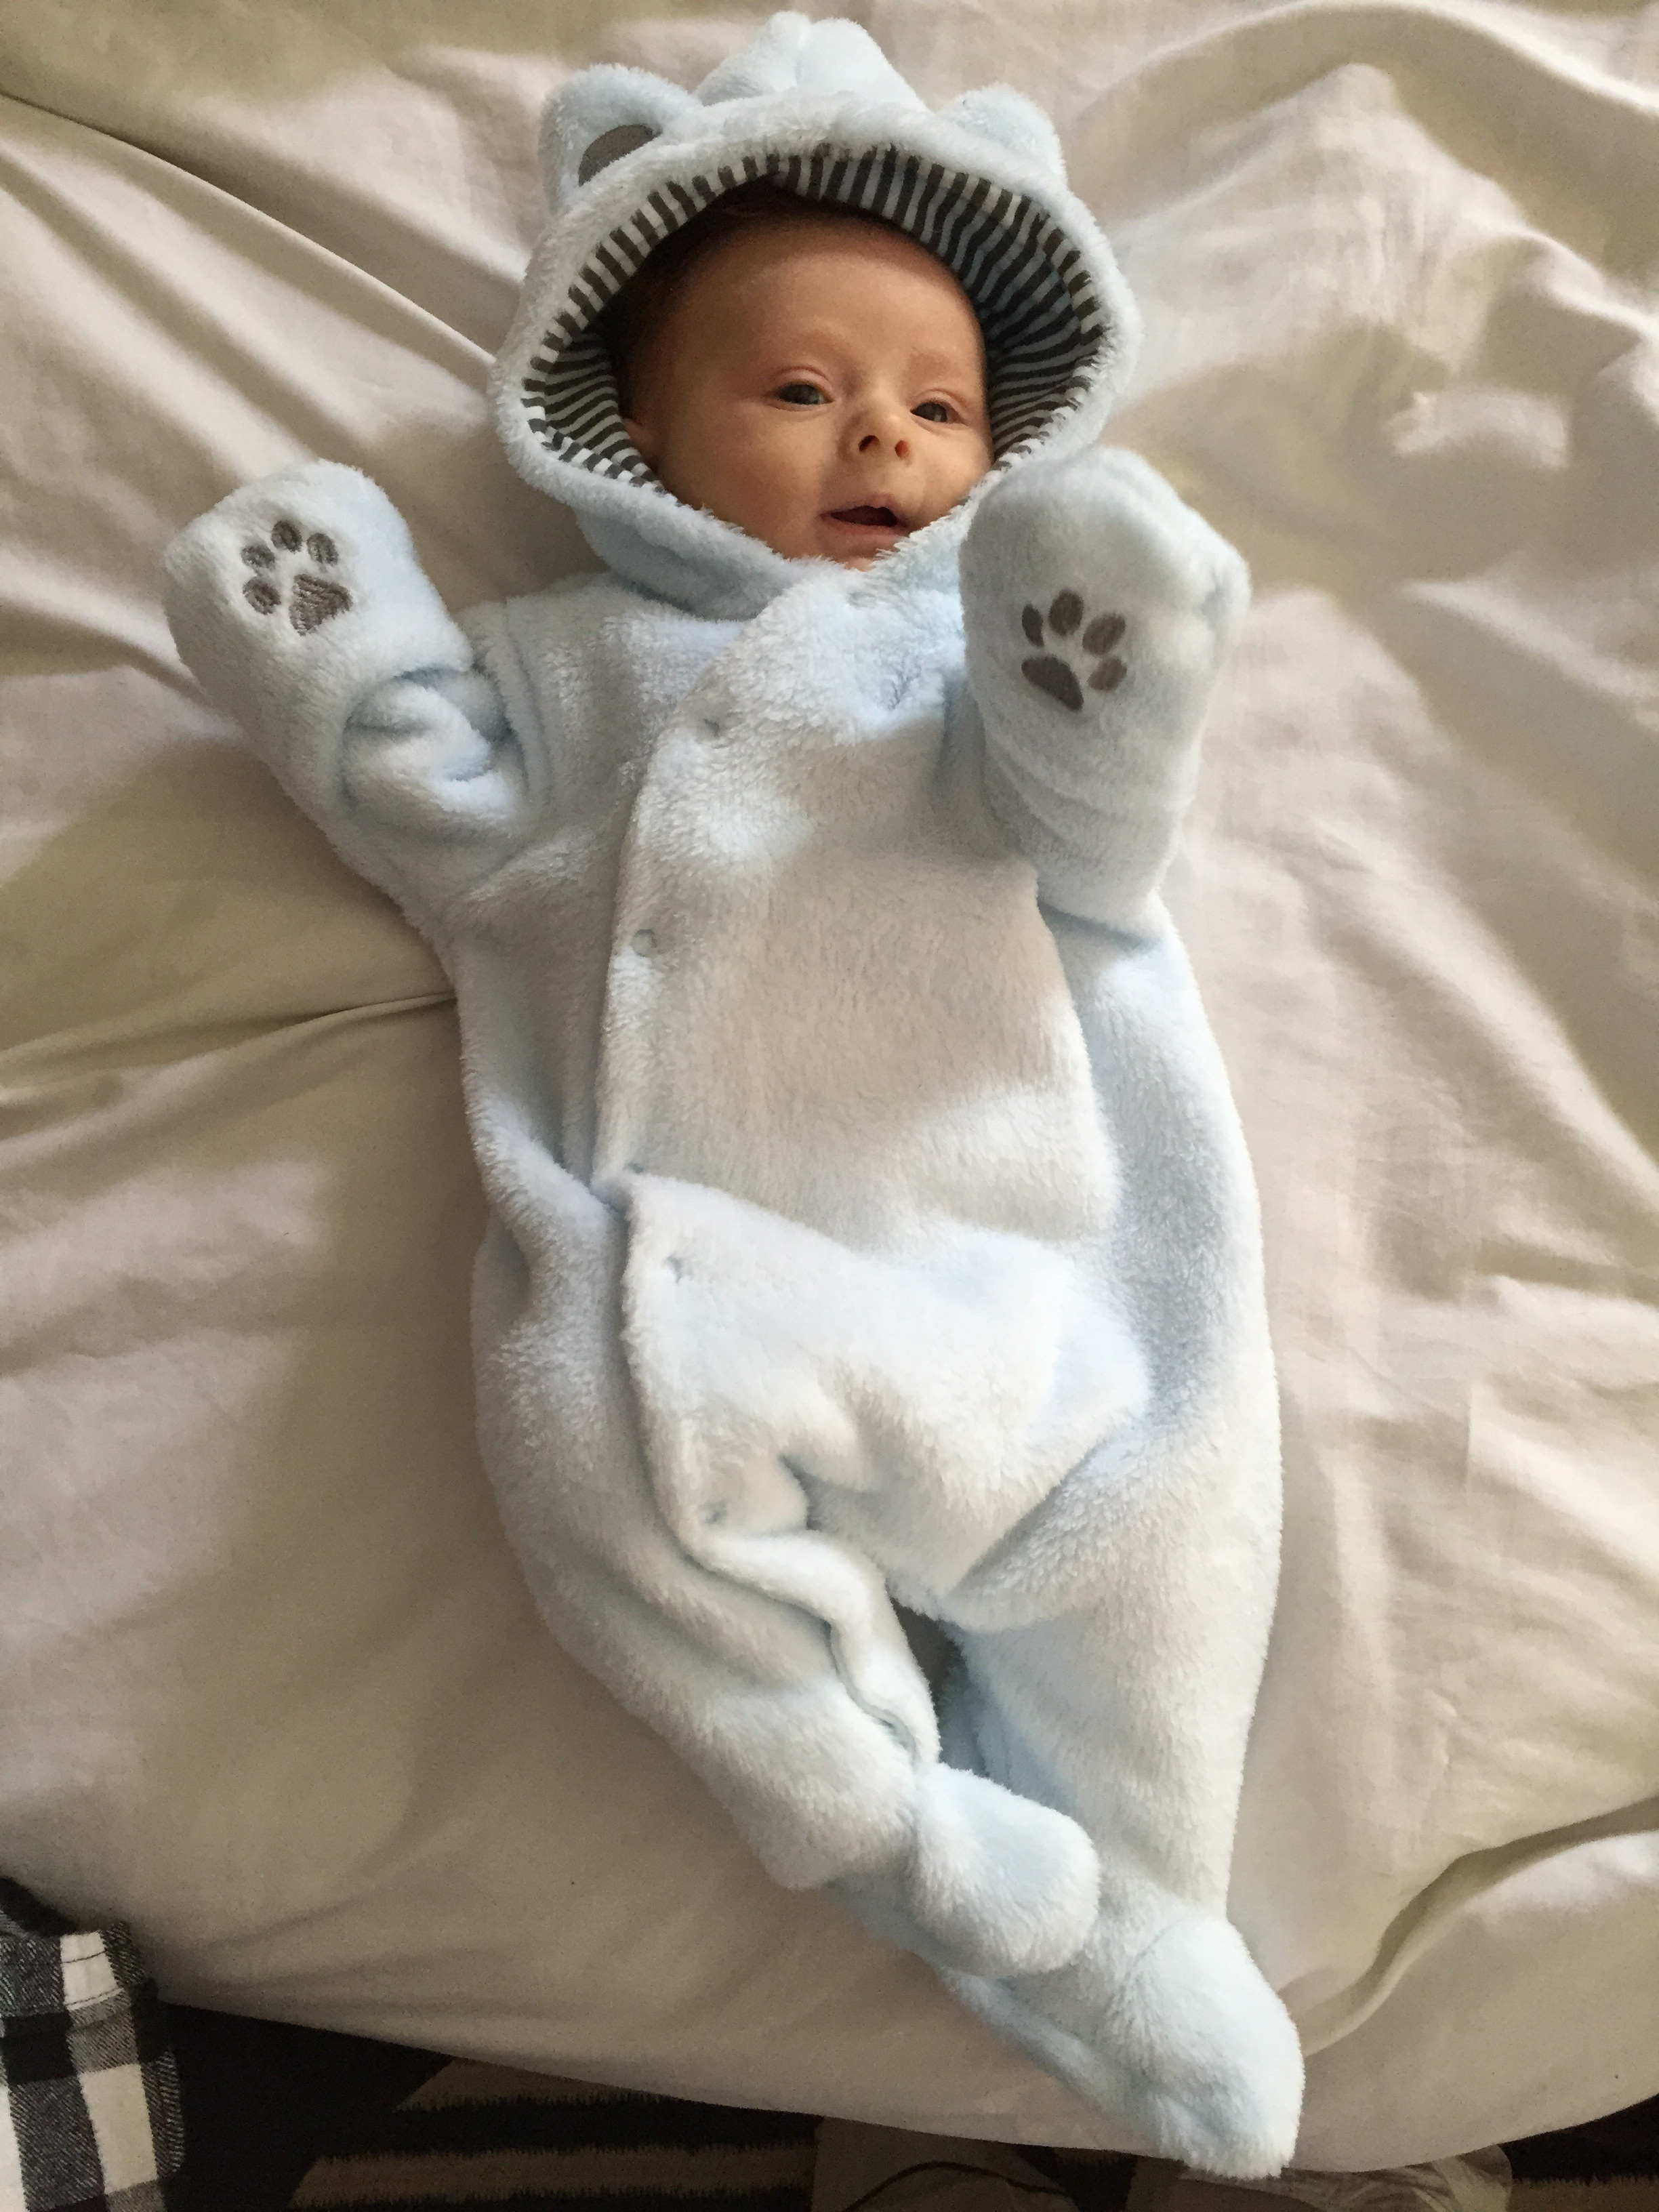 Showing off his new bear onsie